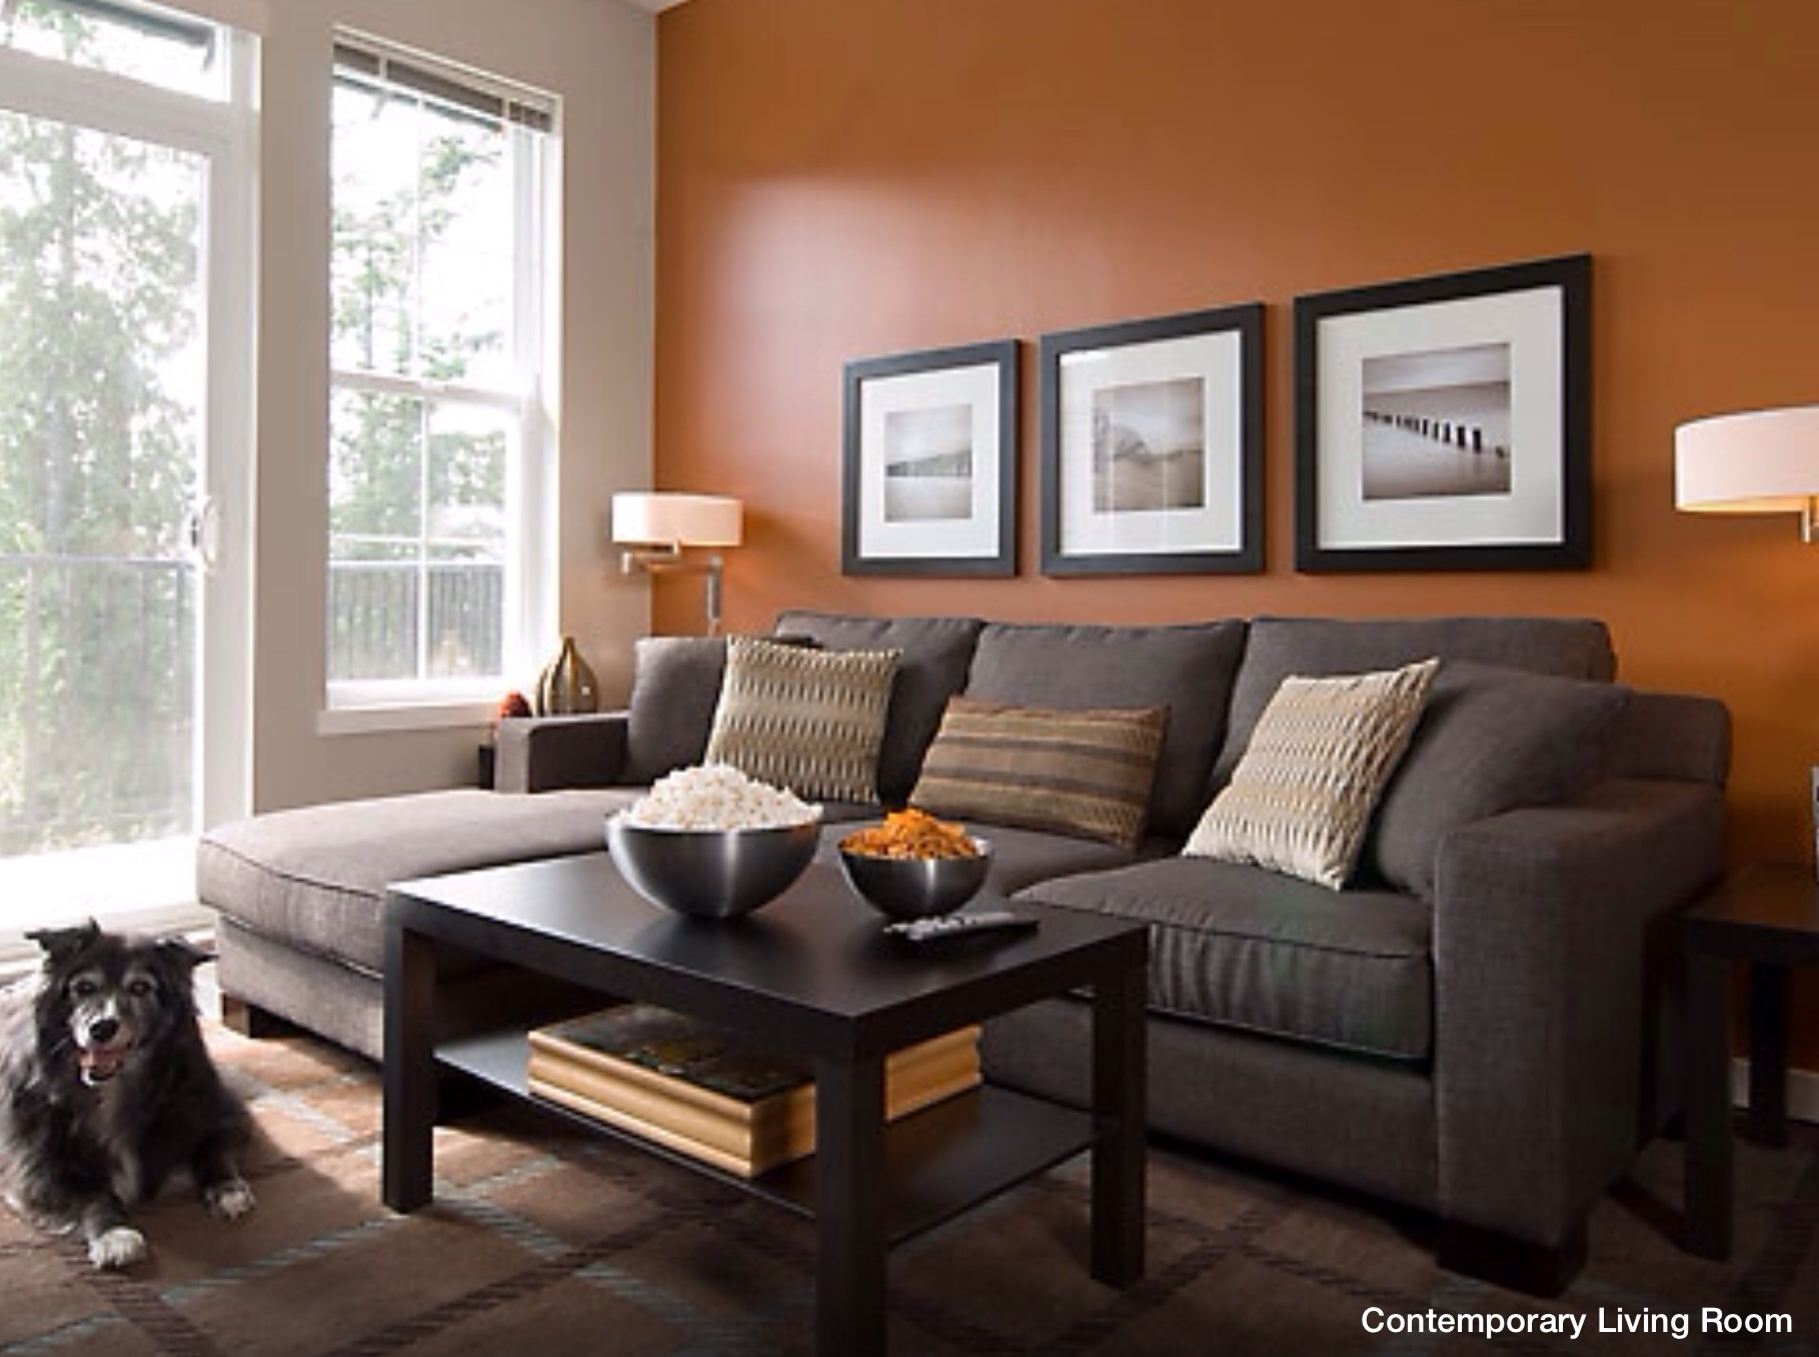 Wall Accent Color | Wall Colors That Work | Pinterest | Wall With Most Popular Brown Couch Wall Accents (View 8 of 15)